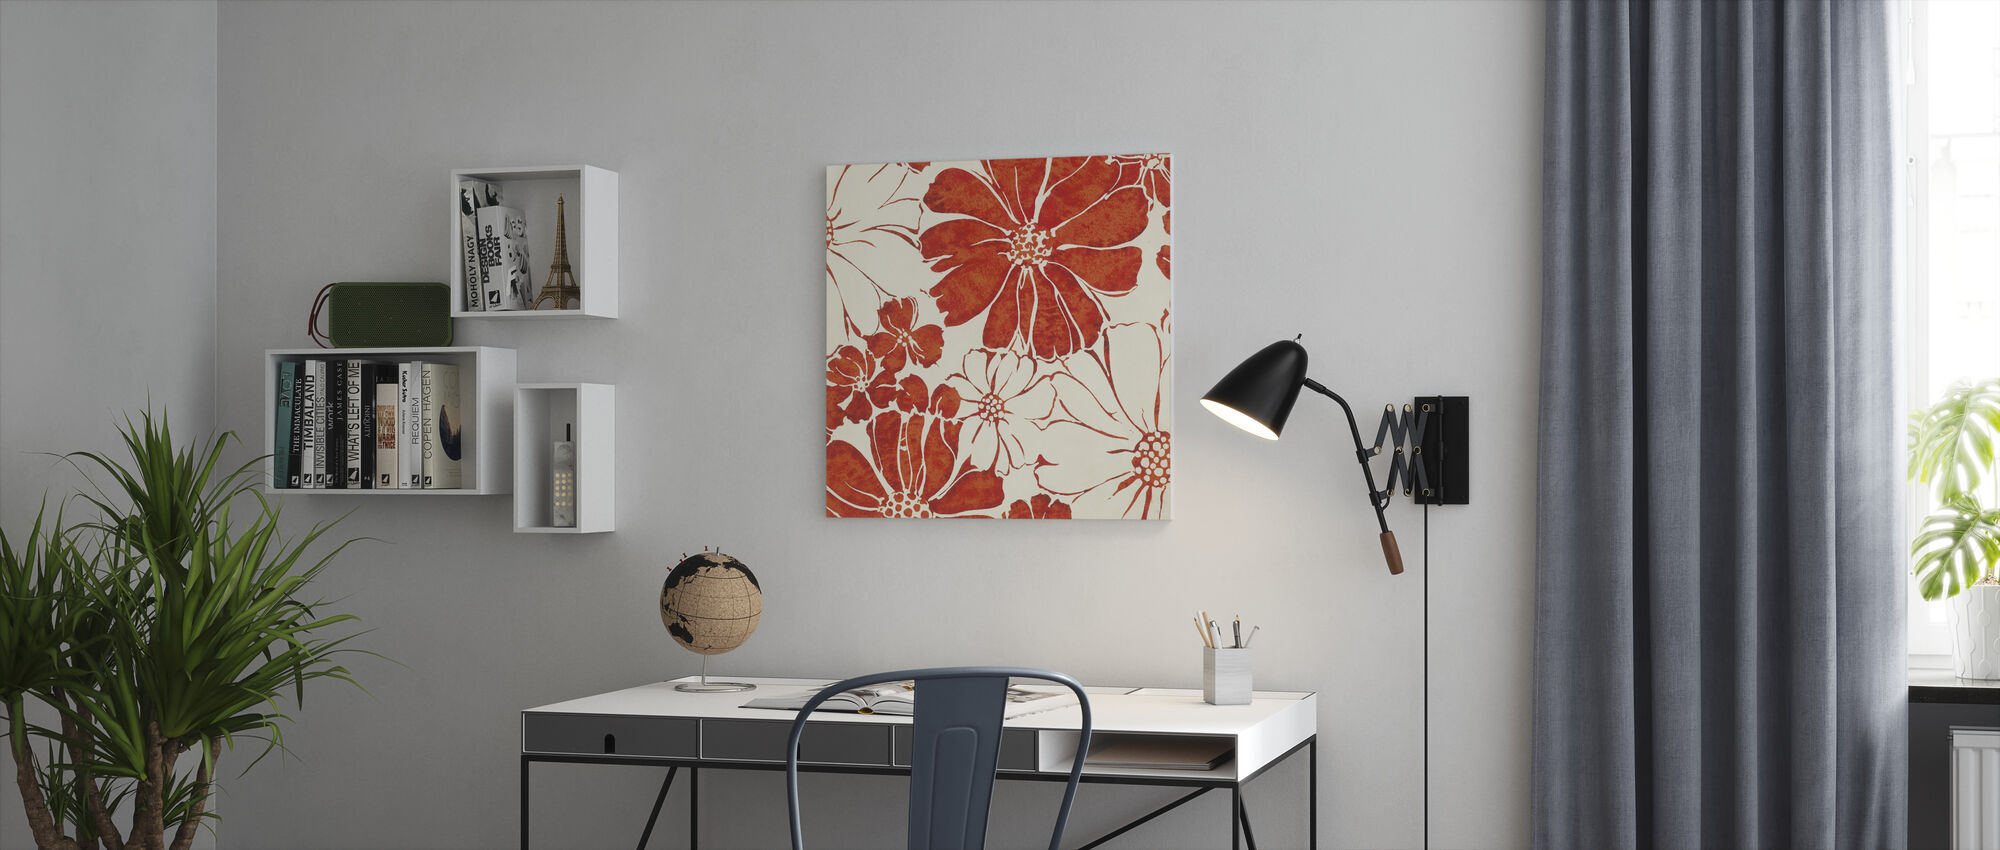 Zomer Madeliefjes Rood - Canvas print - Kantoor